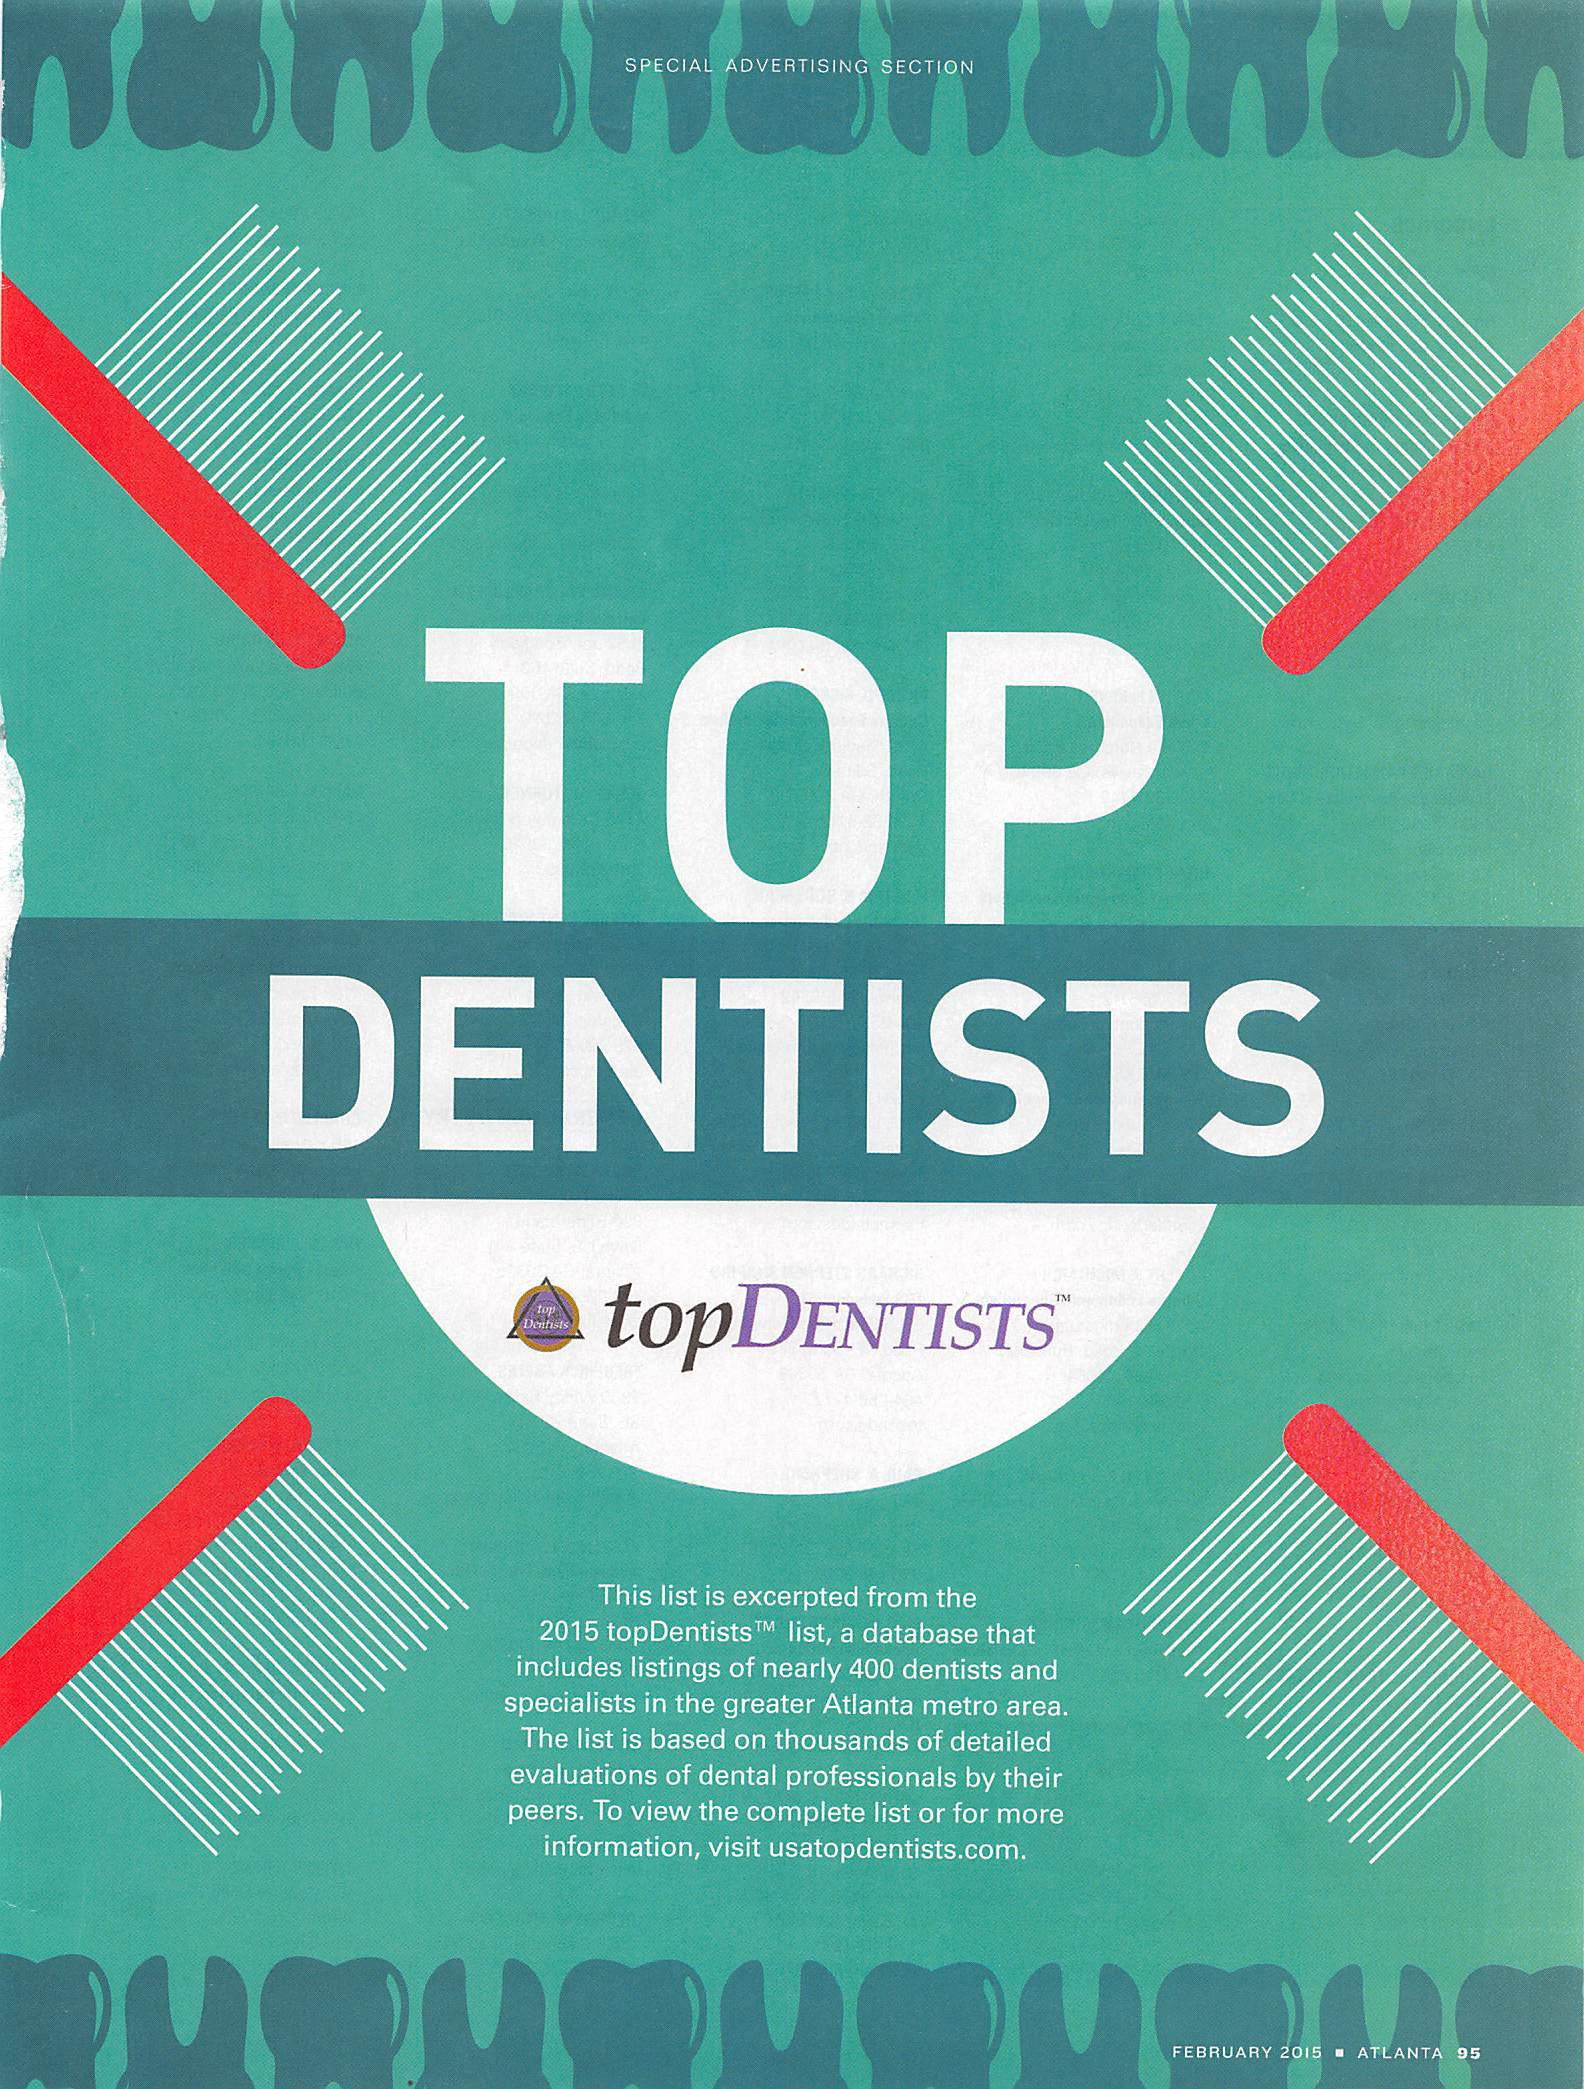 2015 Top Dentists